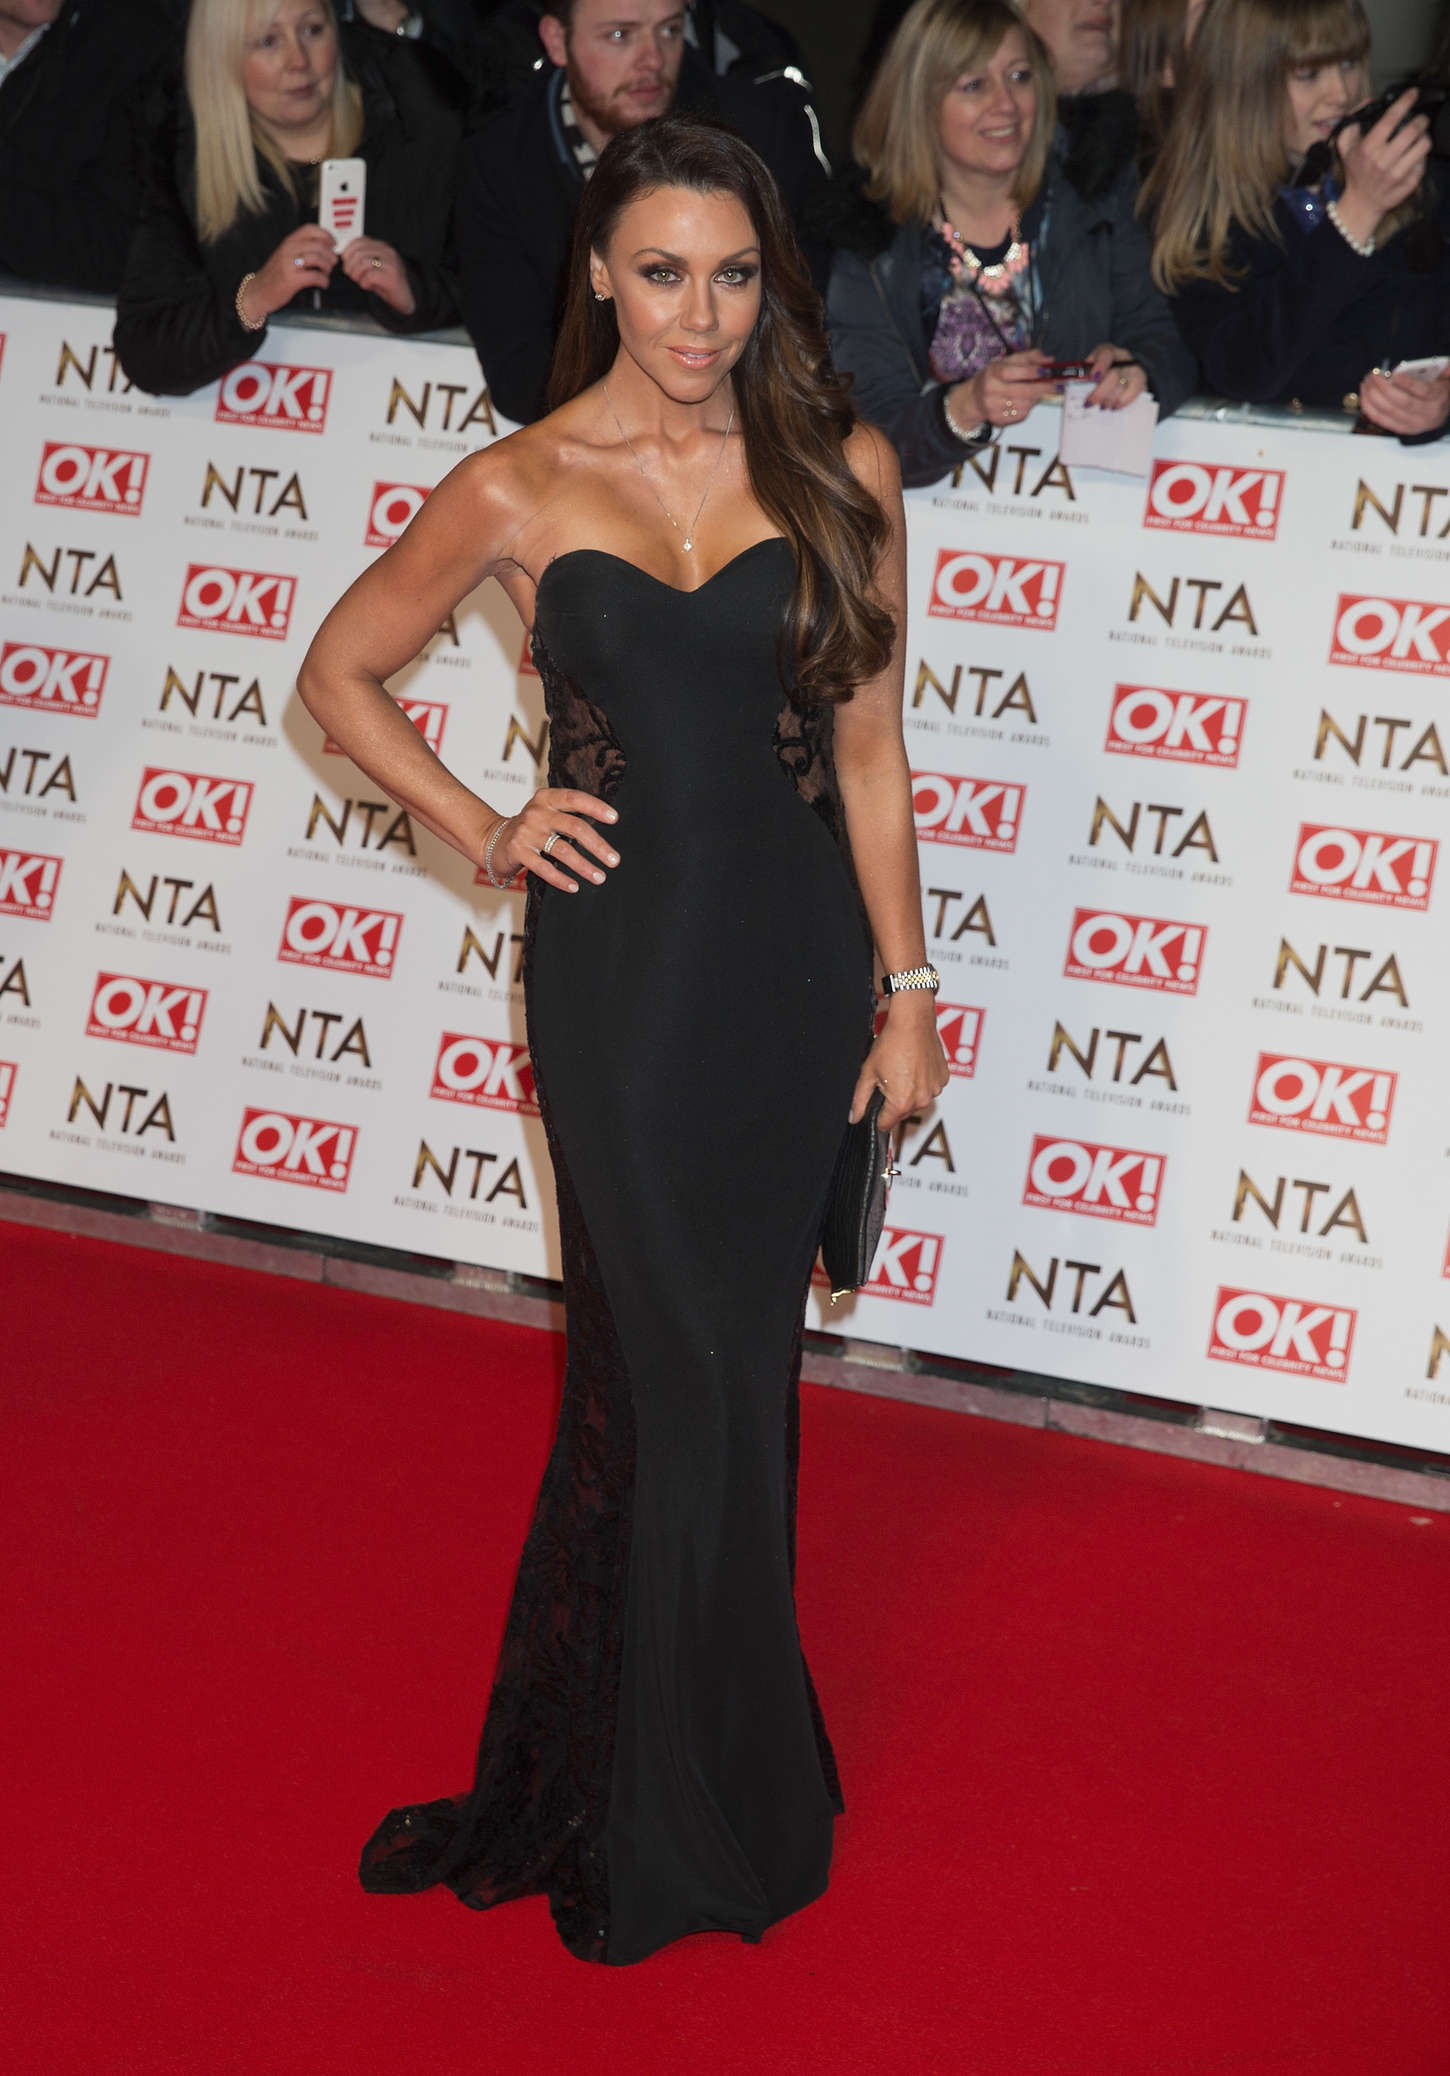 Michelle Heaton National Television Awards in London